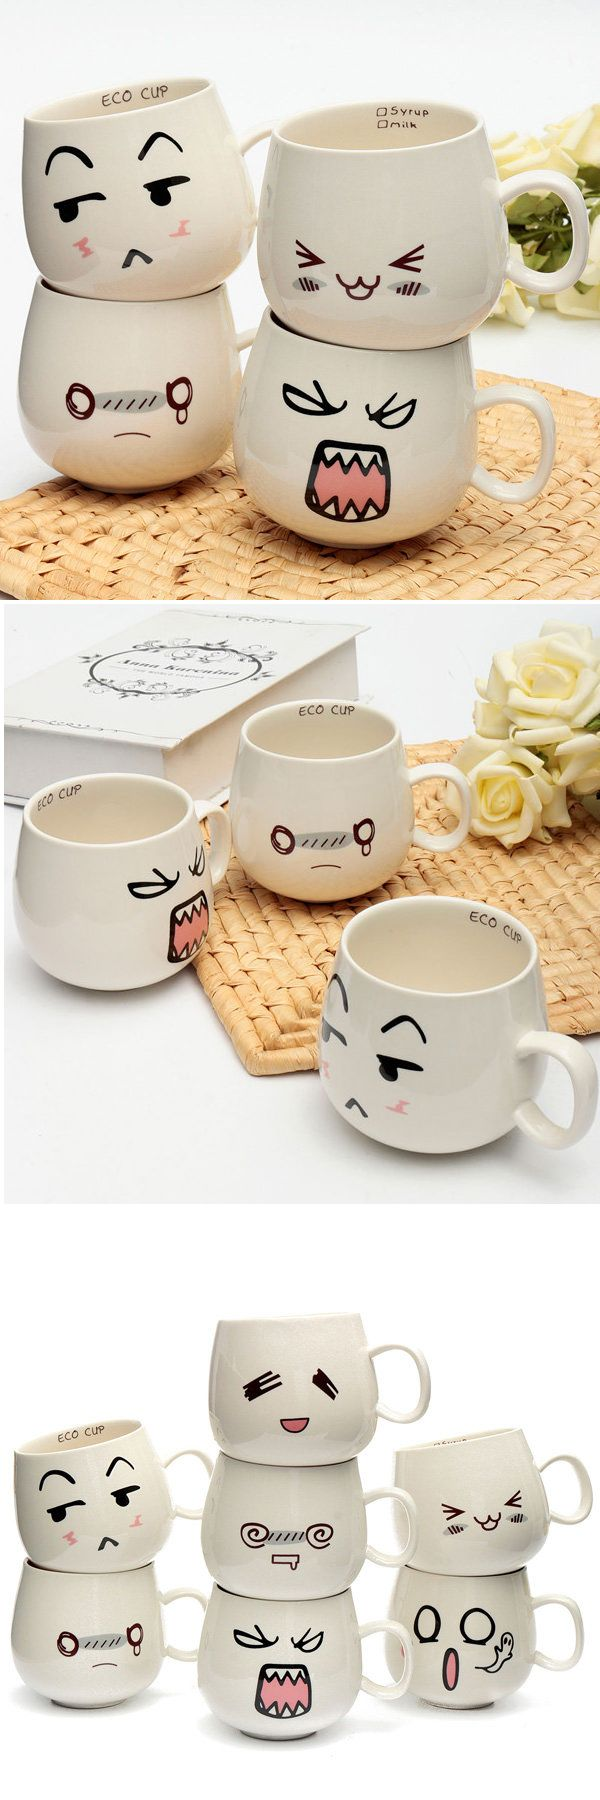 $4.99 300ml Creative Cugte Expression Ceramic Cups Cute Face Mug Tea Coffee Milk Cup